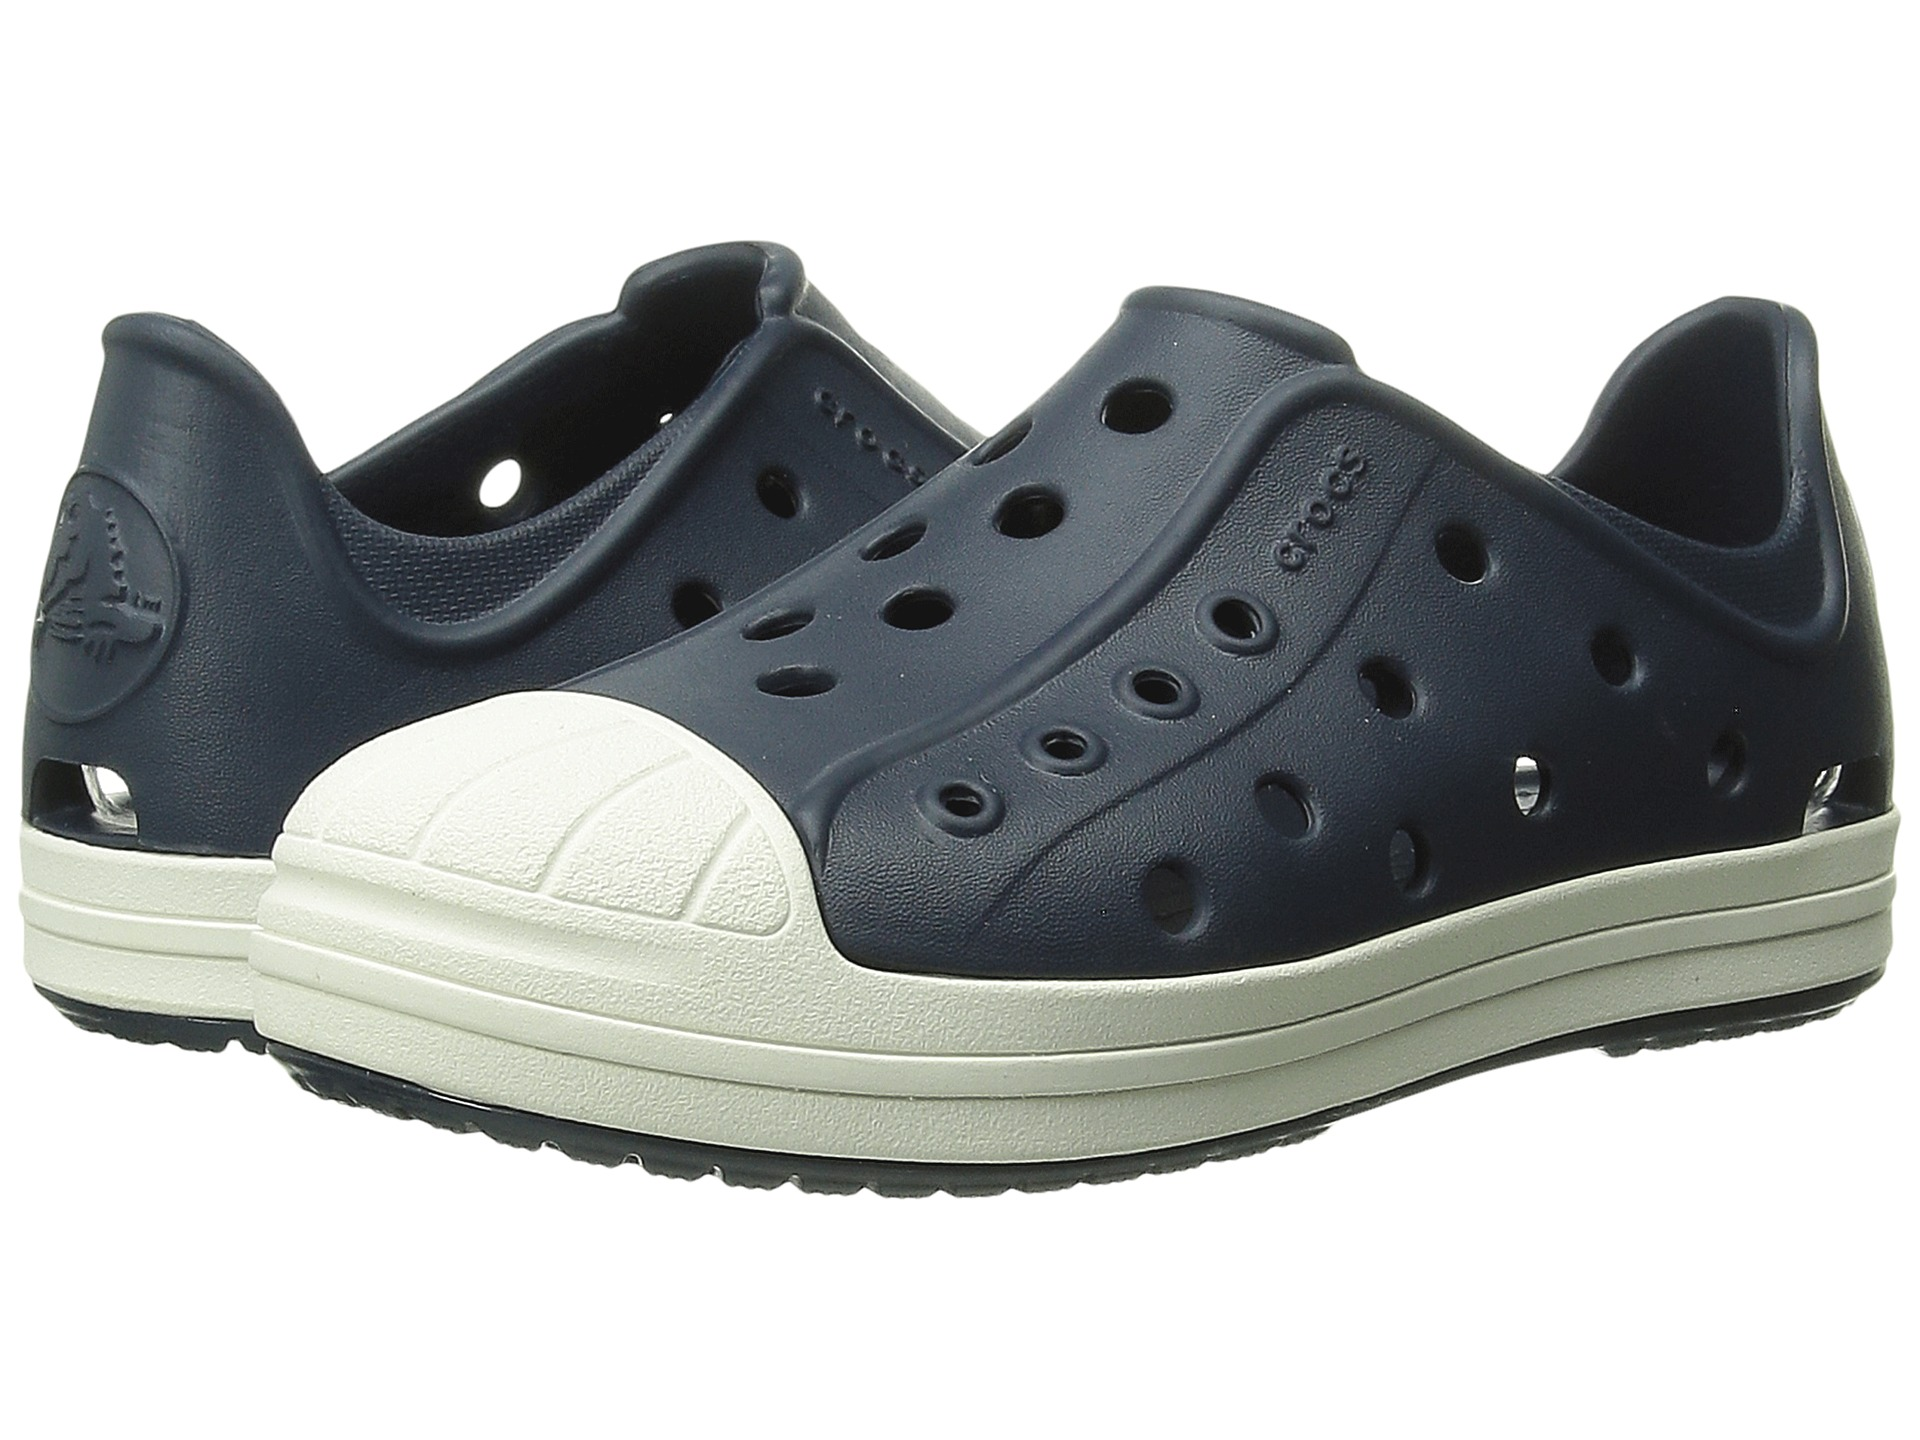 Crocs Kids Bump It Shoe (Toddler/Little Kid) Navy/Oyster - Zappos.com ...